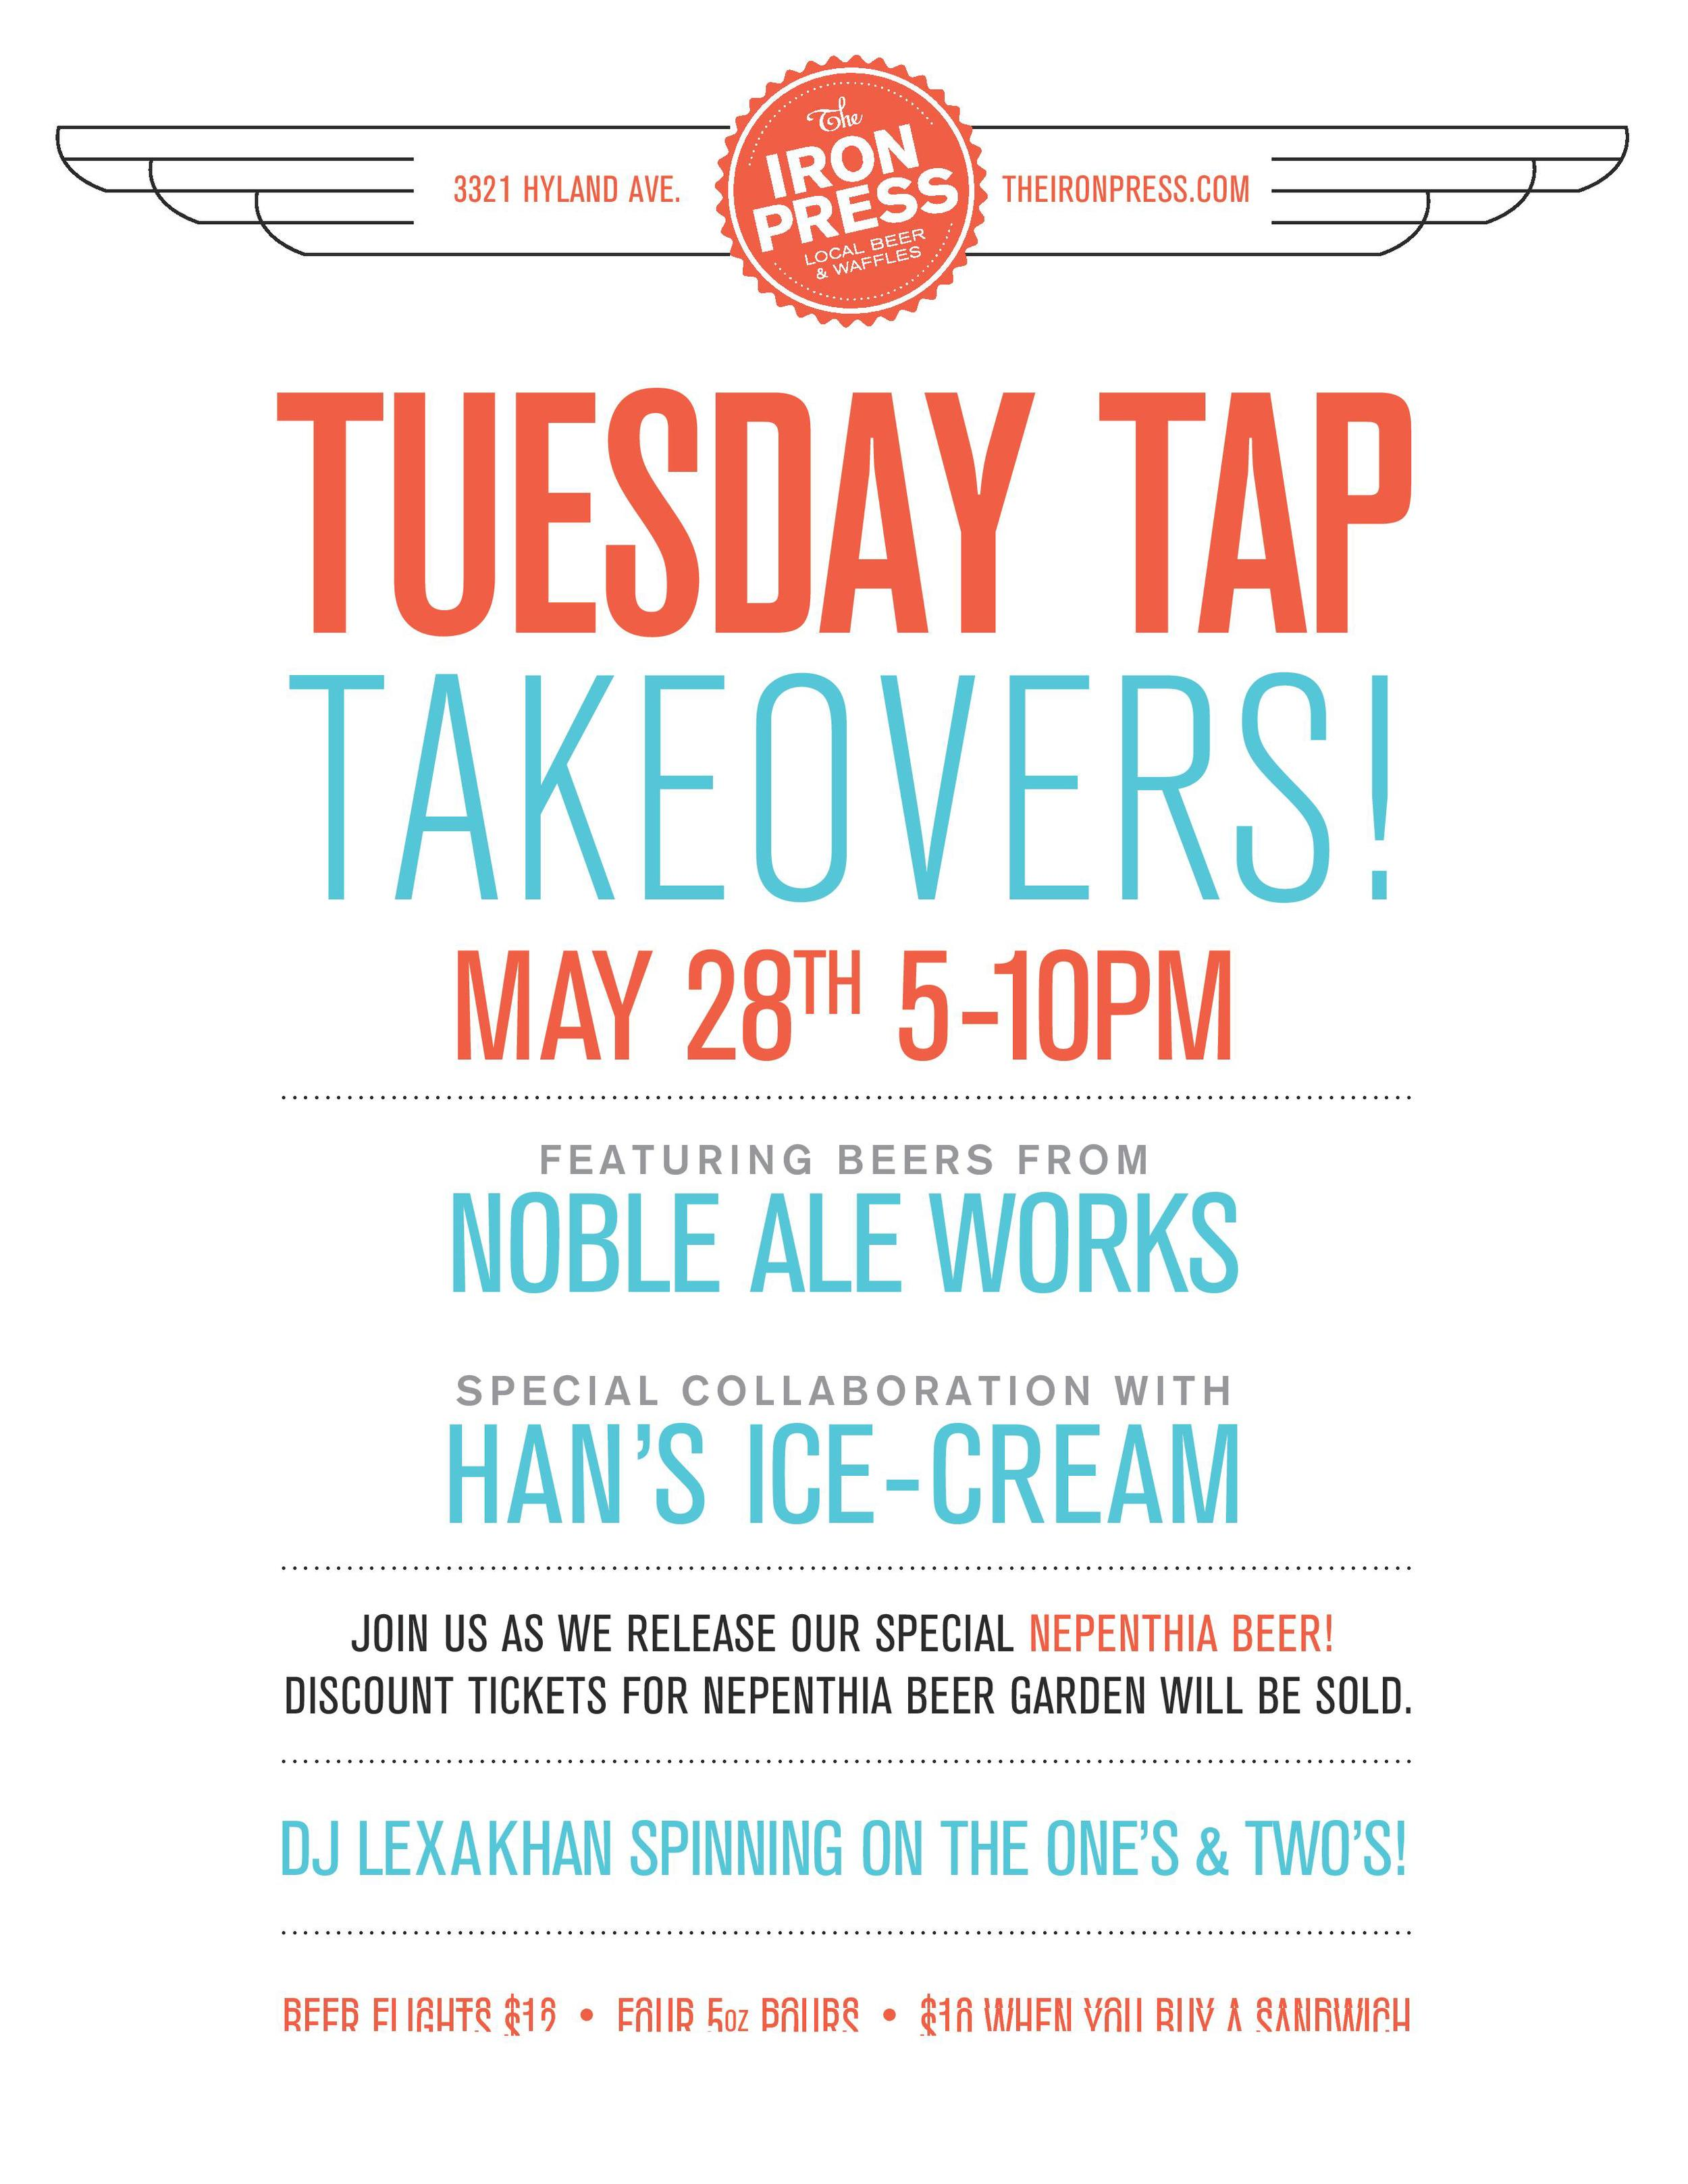 Tuesday Tap Takeovers - The Noble Ale Works x Han's Ice Cream x Nepenthia Beer Garden Edition